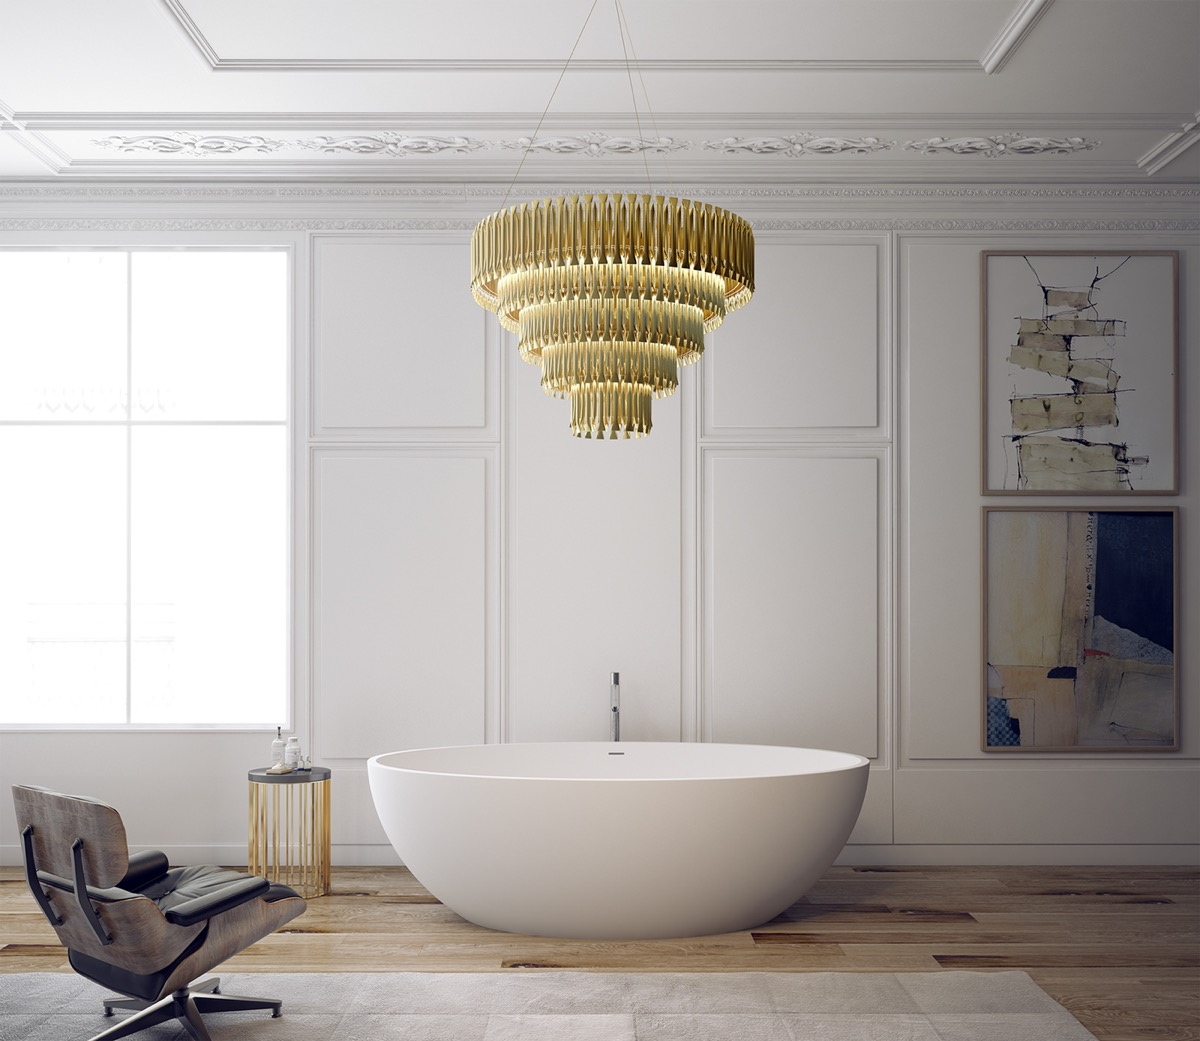 An ovoid tub is the crown jewel of any minimalistic bathroom. This design features a subtle faucet and overflow so the comforting shape can take center stage.